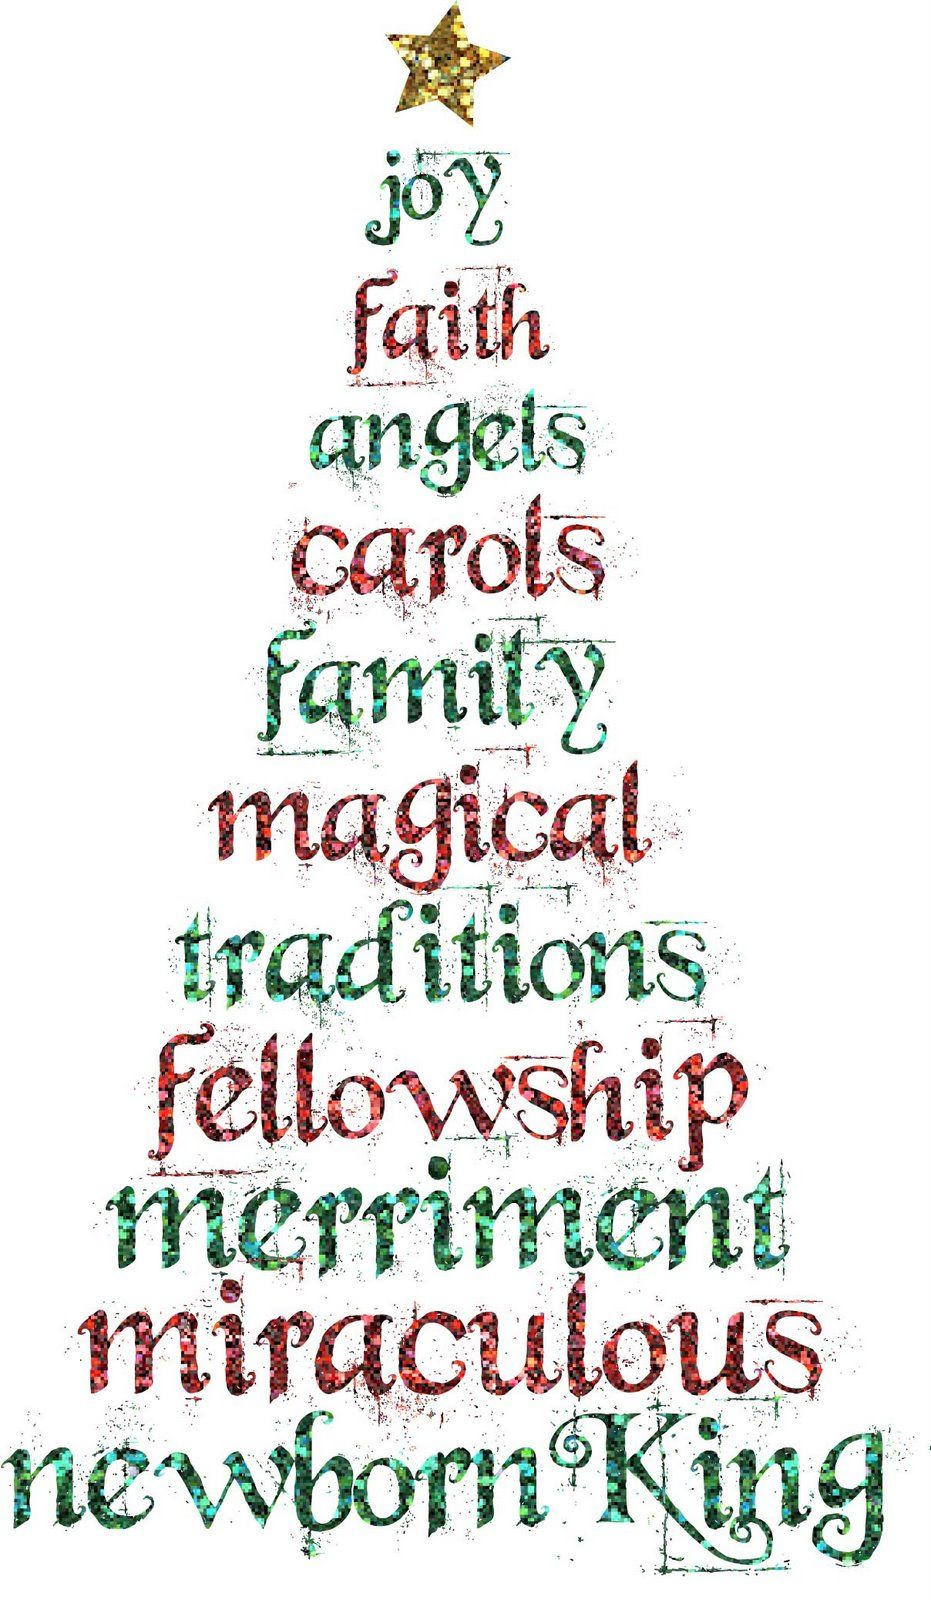 Melanie S Digital Creations What Christmas Means To Me Christmas Wishes Quotes Christmas Quotes Christmas Joy